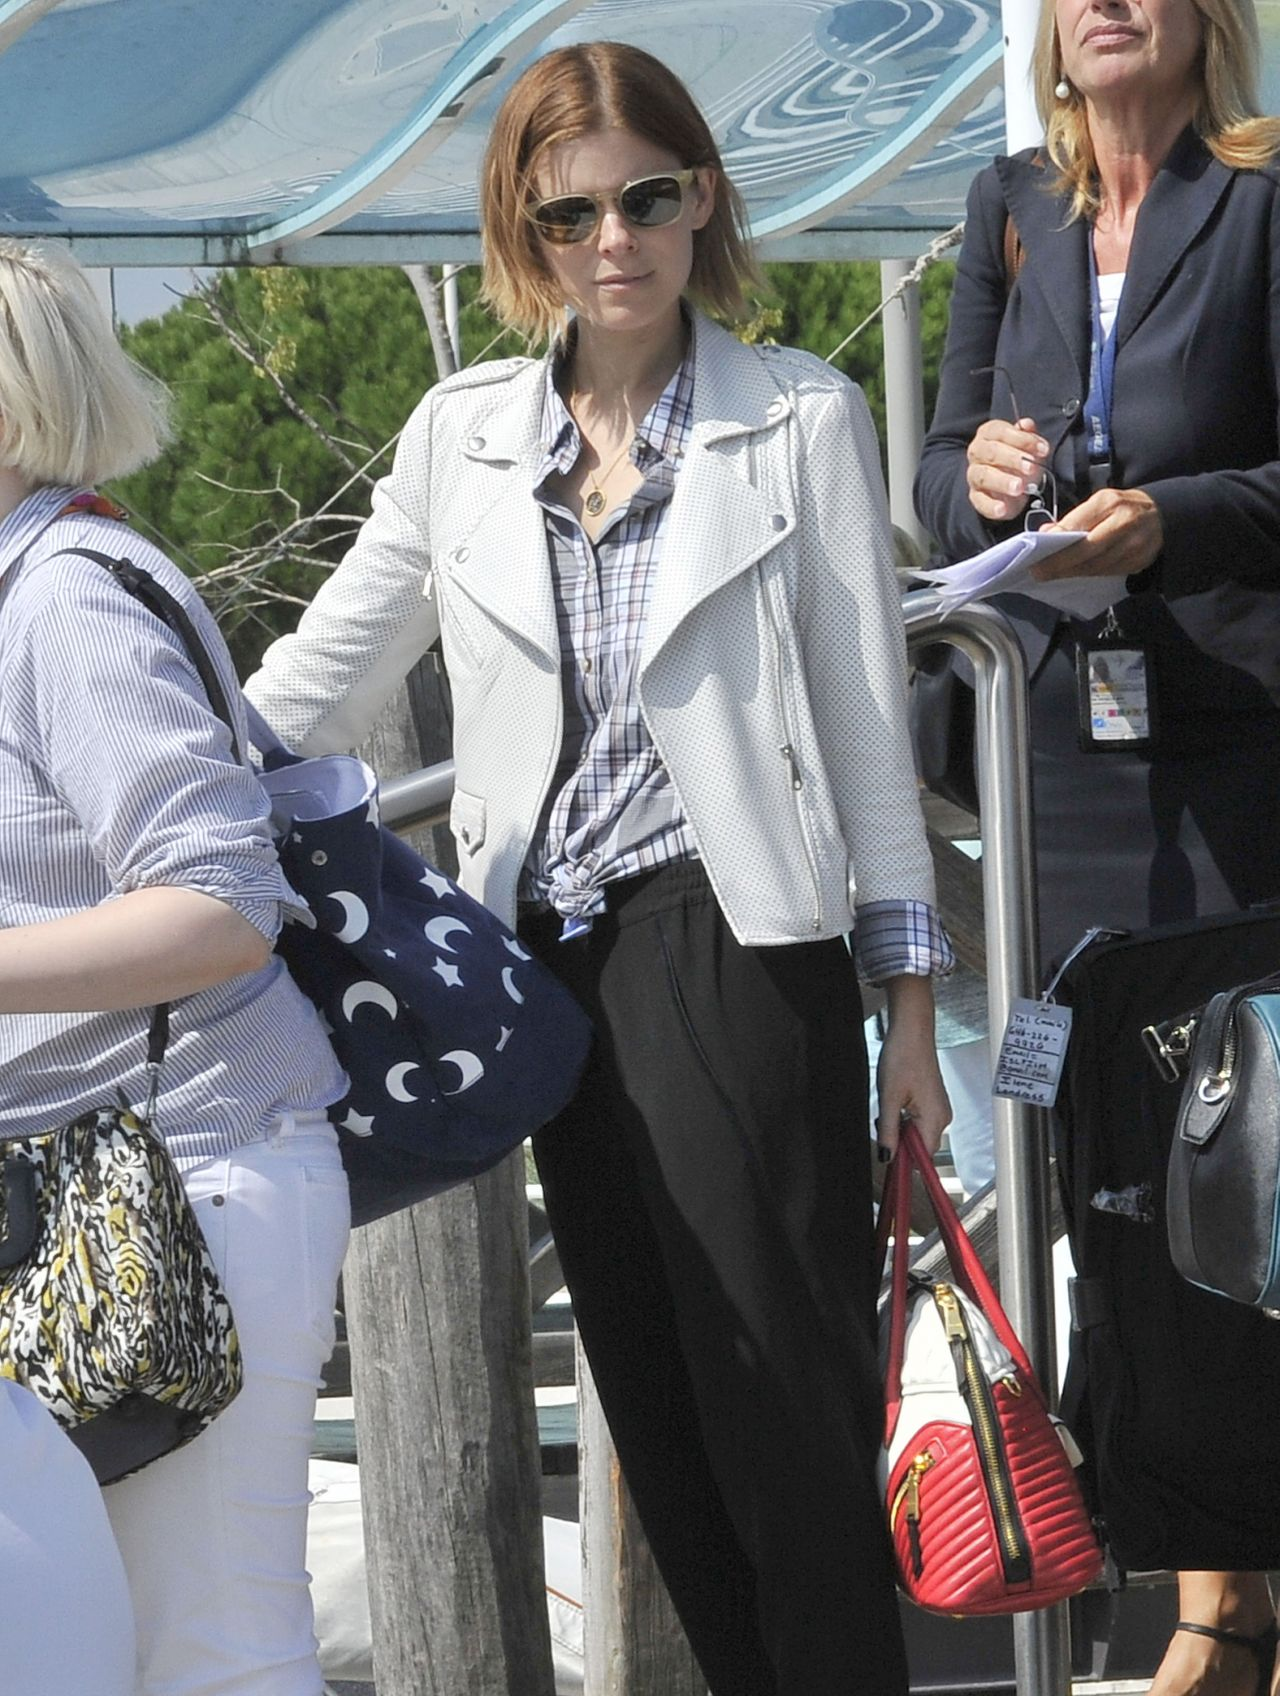 Kate Mara Out in Venice - Aug 2014